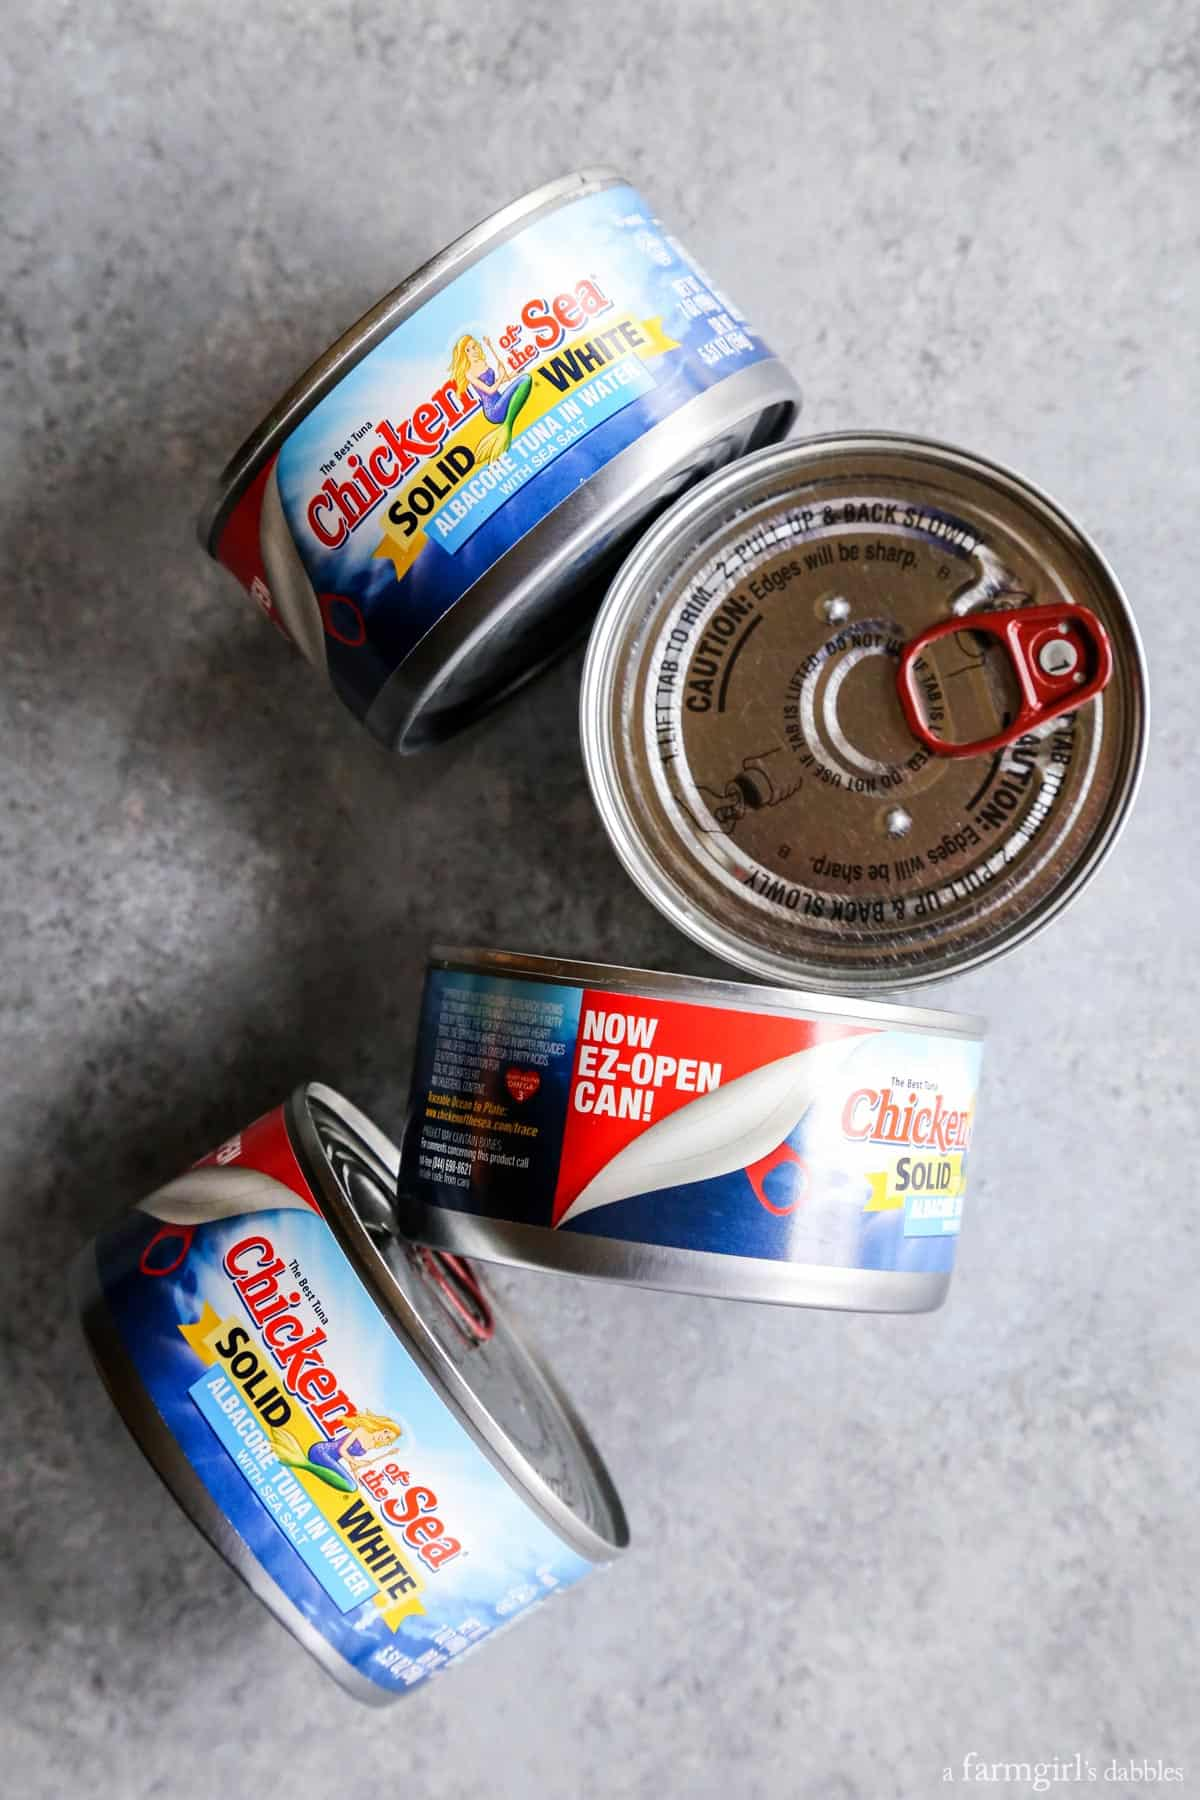 Chicken of the Sea Solid White Albacore in EZ-Open Cans from afarmgirlsdabbles.com